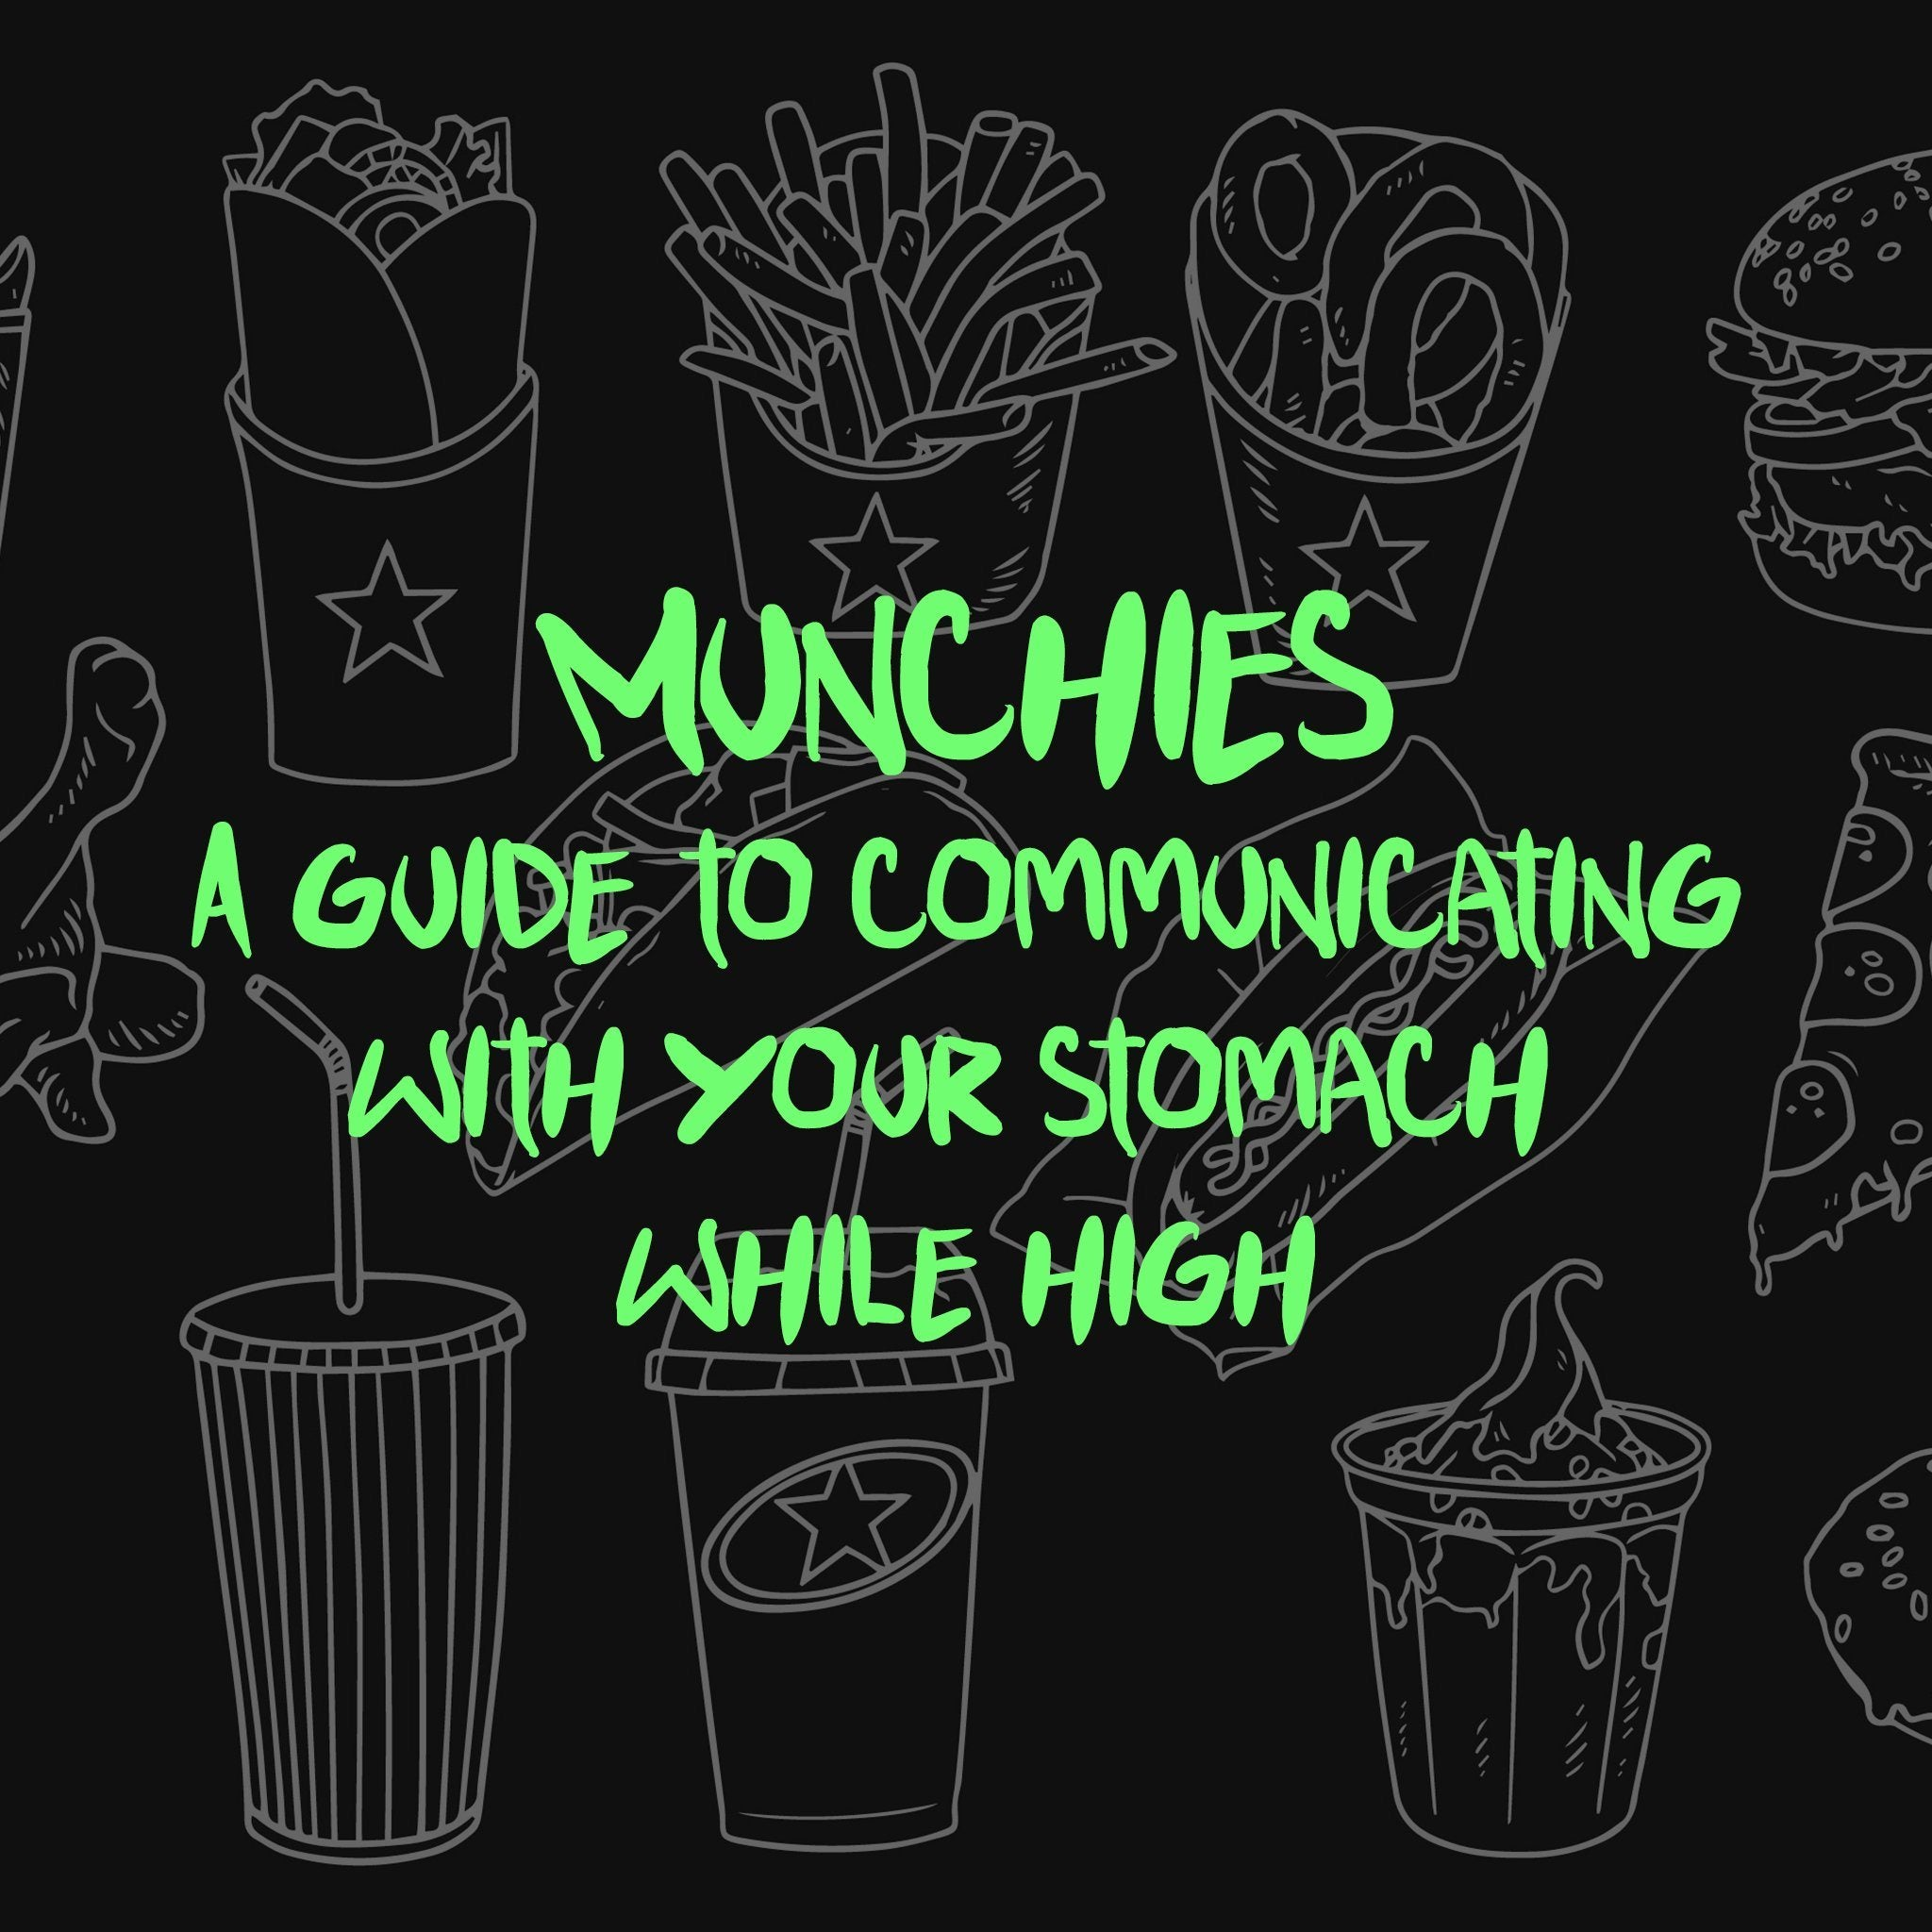 Munchies - A Guide to Communicating with Your Stomach While High